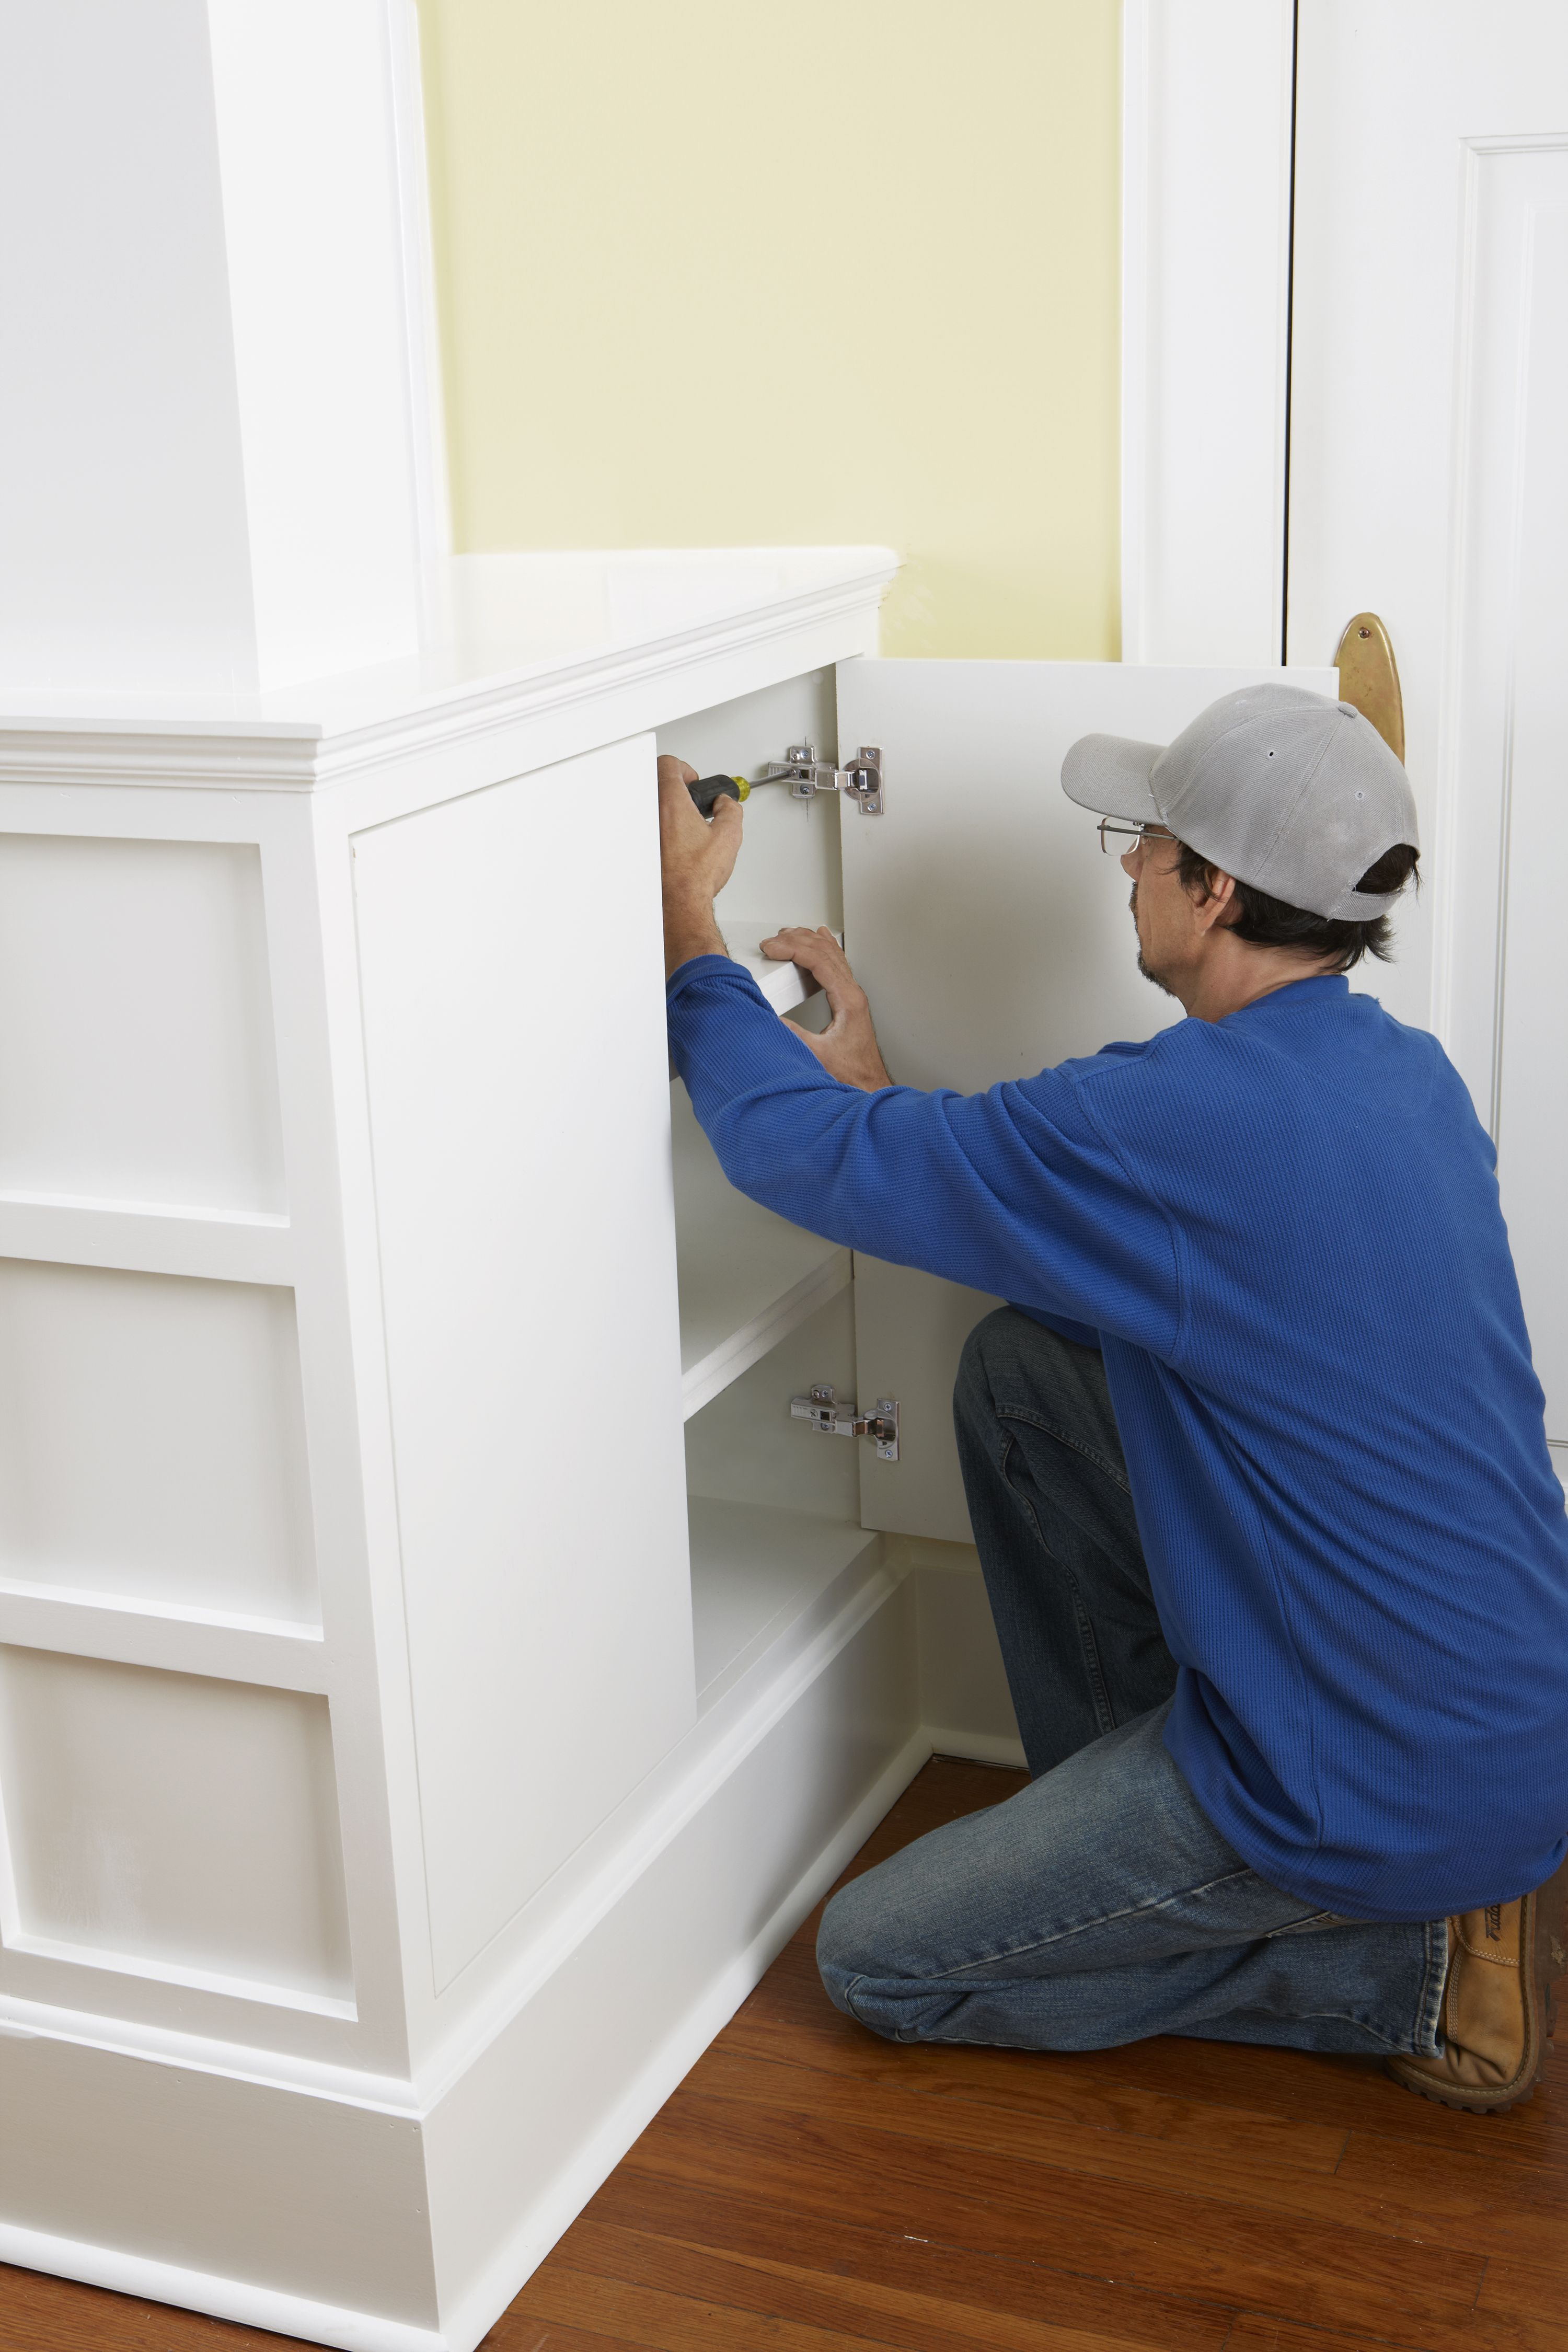 Easily Upgrade Cabinets With These Adjustable Disguised Hinge Hinges For Cabinets Cabinet Styles Cabinet Door Styles